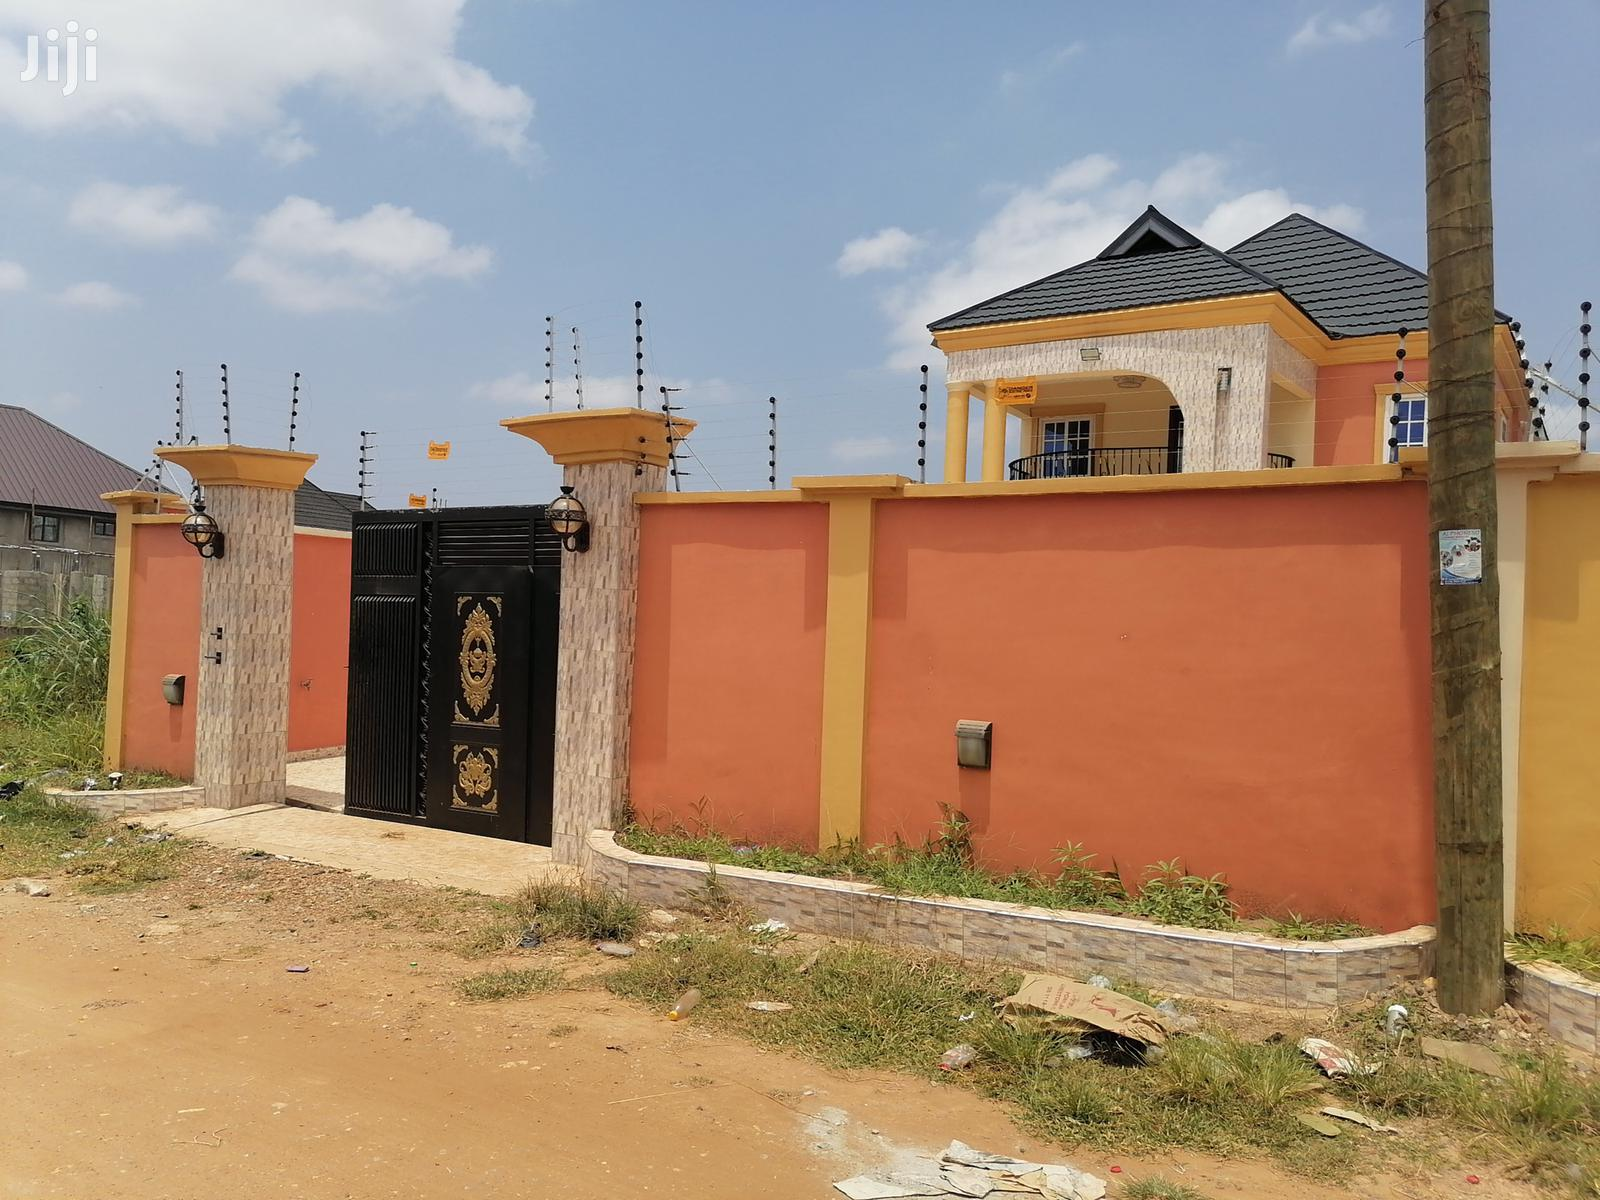 New Exclusive 4 Bedroom Duplex For Rent At East Legon Hills | Houses & Apartments For Rent for sale in East Legon, Greater Accra, Ghana